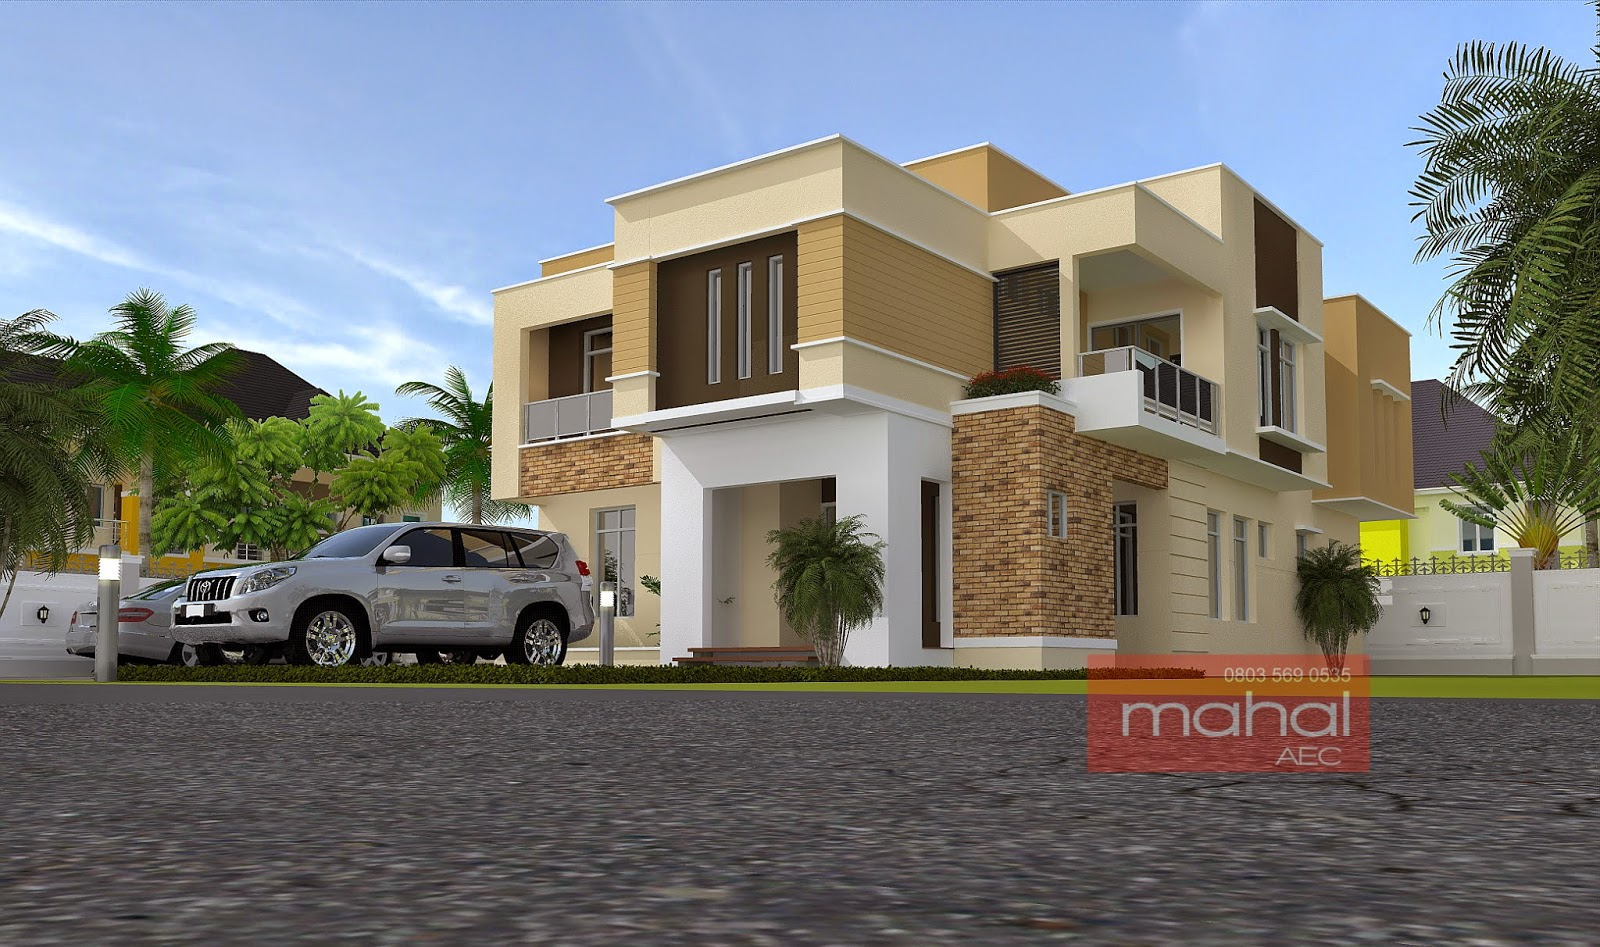 Nigerian House Designs And Plans Get House Design Ideas